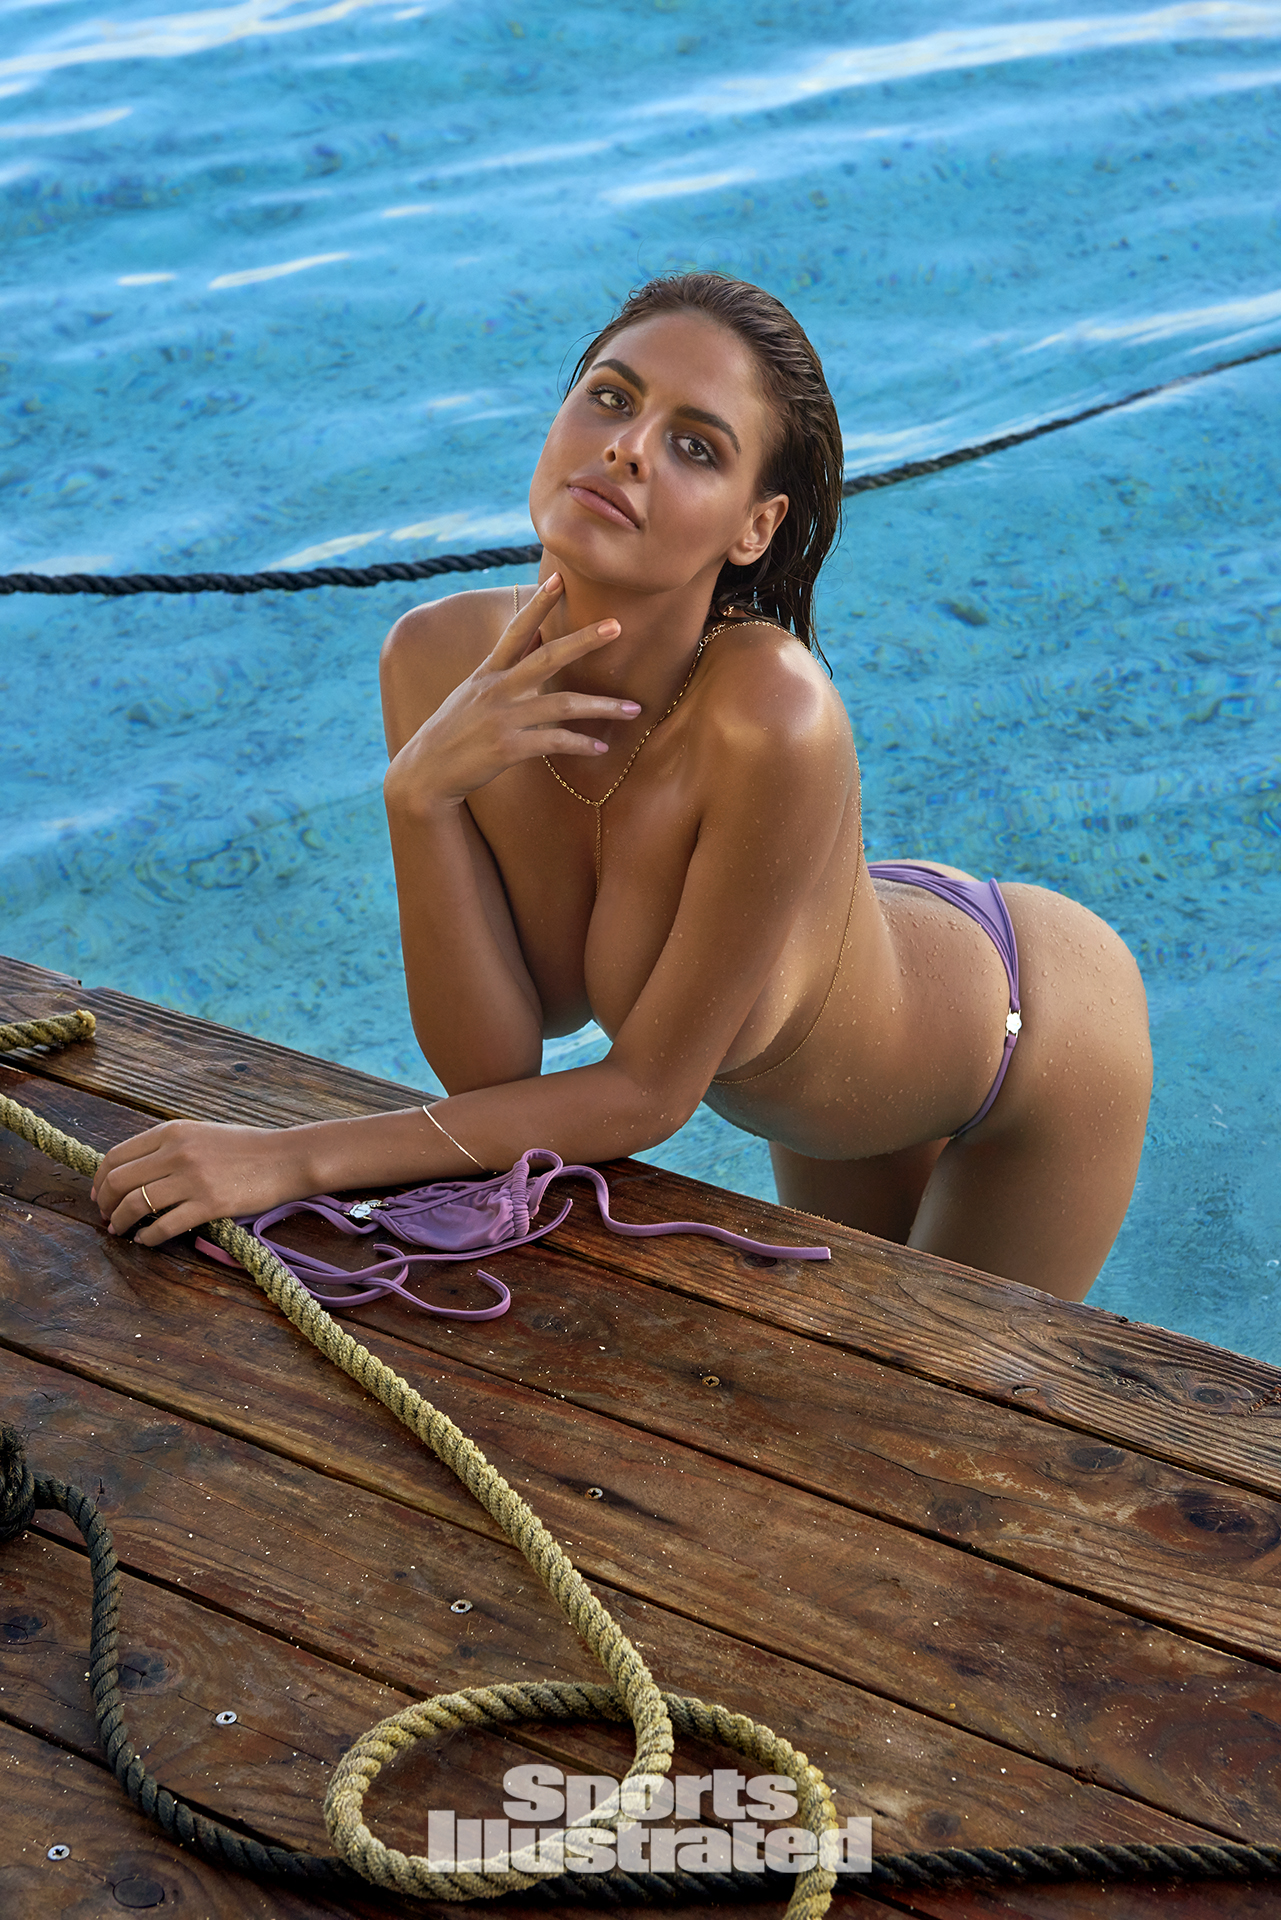 Bo Krsmanovic was photographed by Yu Tsai in The Islands Of Tahiti. Swimsuit by TeenyB Bikini Couture.